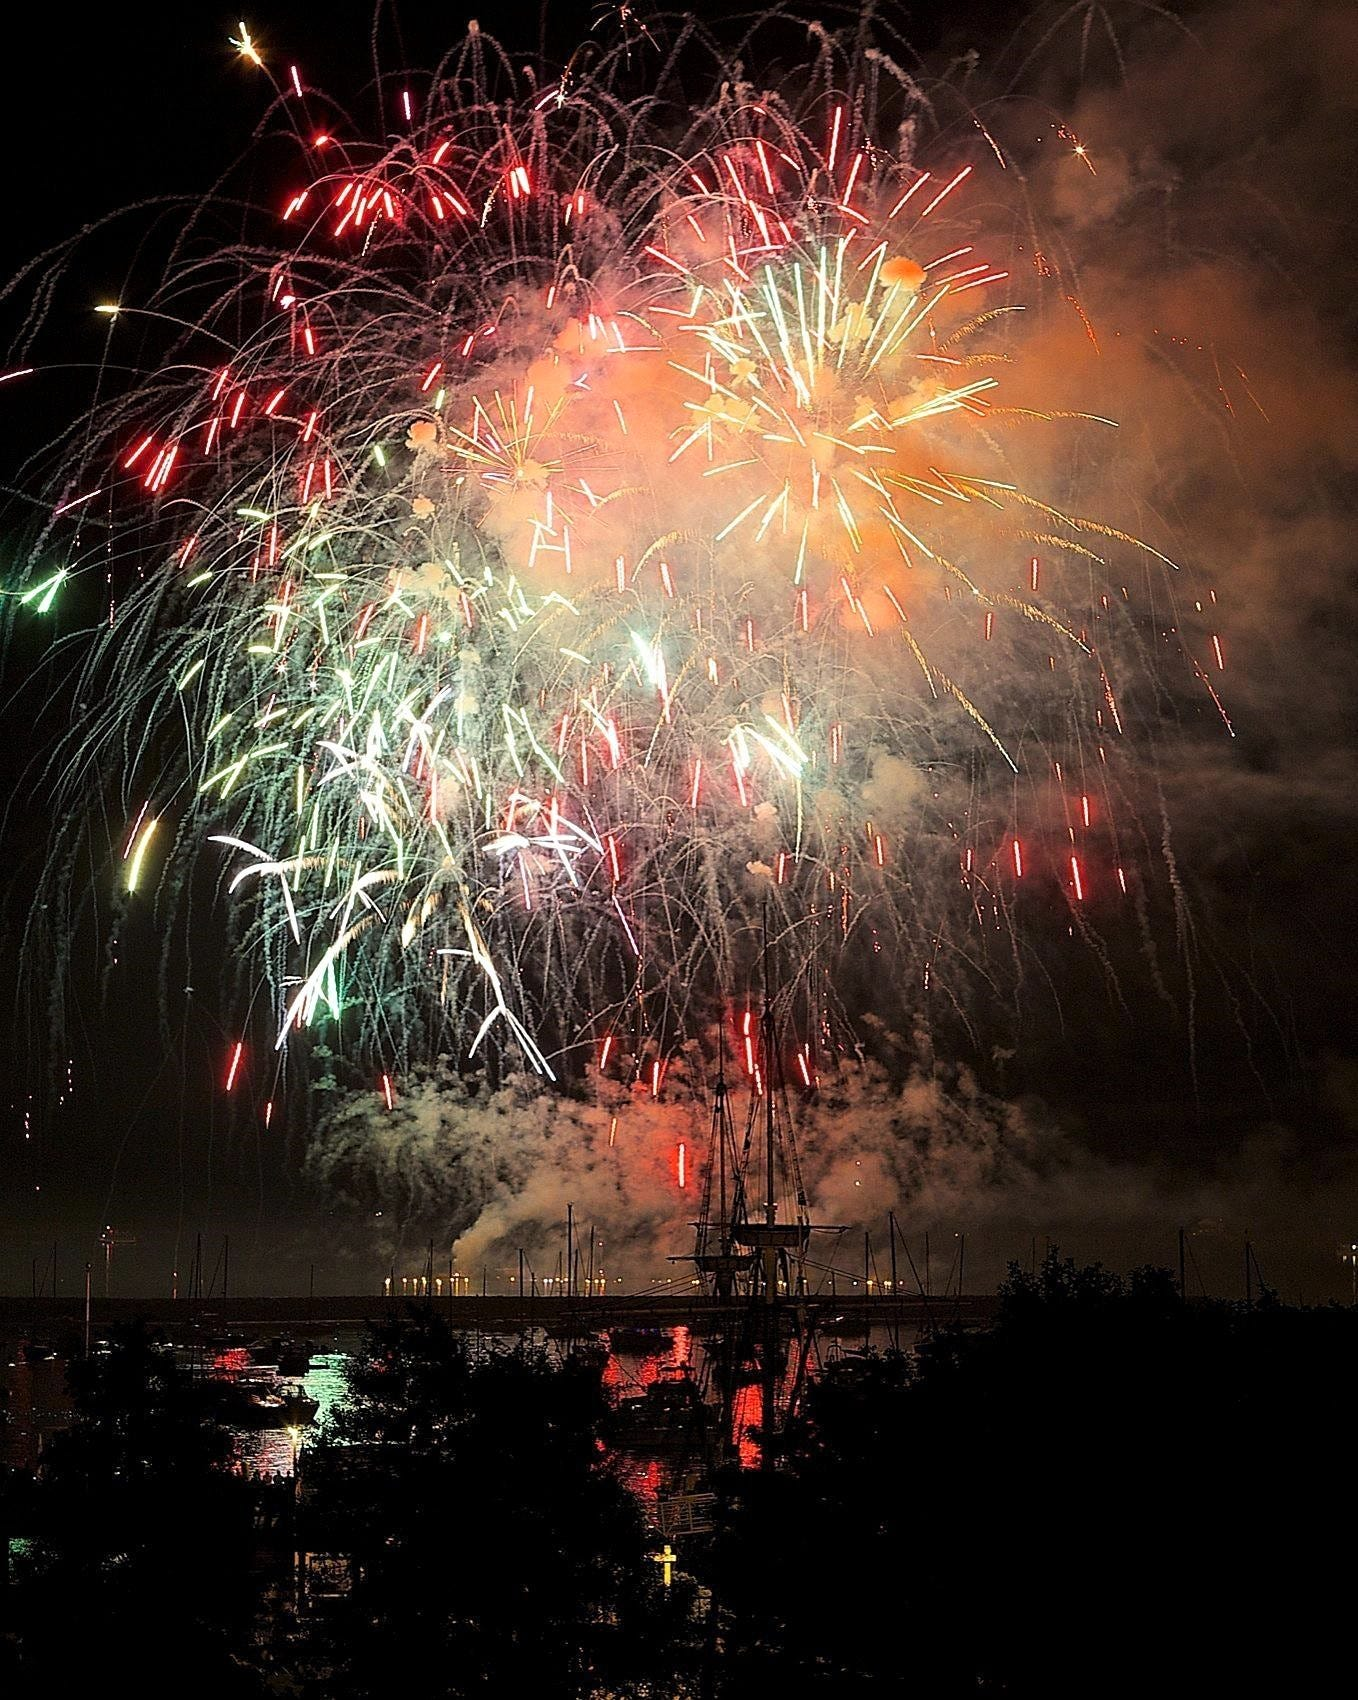 Plymouth will celebrate America's Birthday with patriotic music and fireworks on July 5.